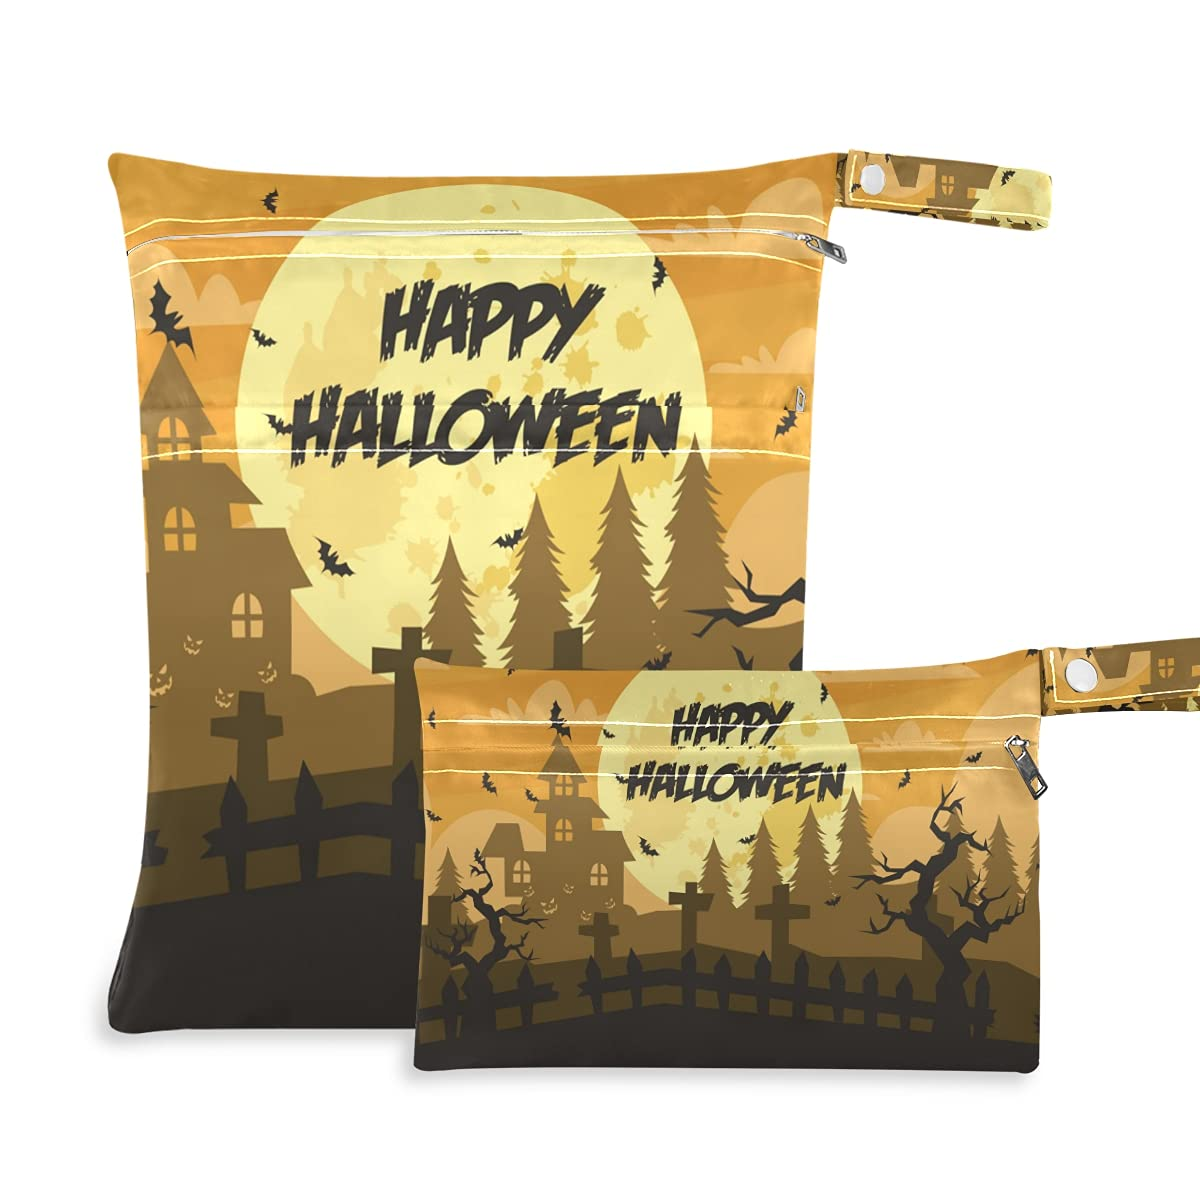 Creepy Halloween Wet Dry Max 69% OFF Soldering Bag Swimsui Reusable for Diaper